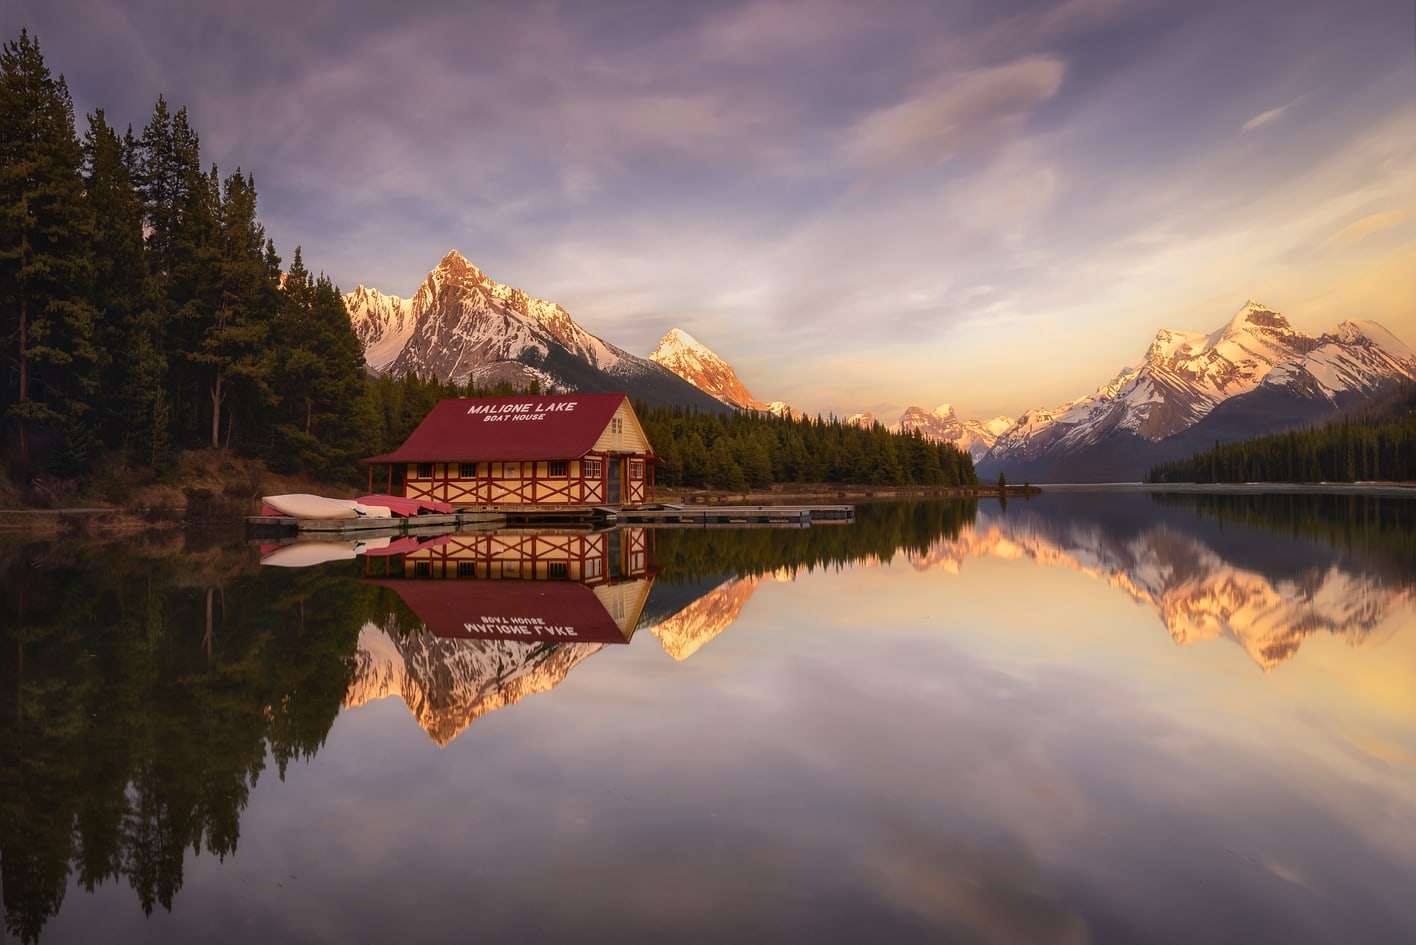 maligne lake hire canadian rocky mountains tour